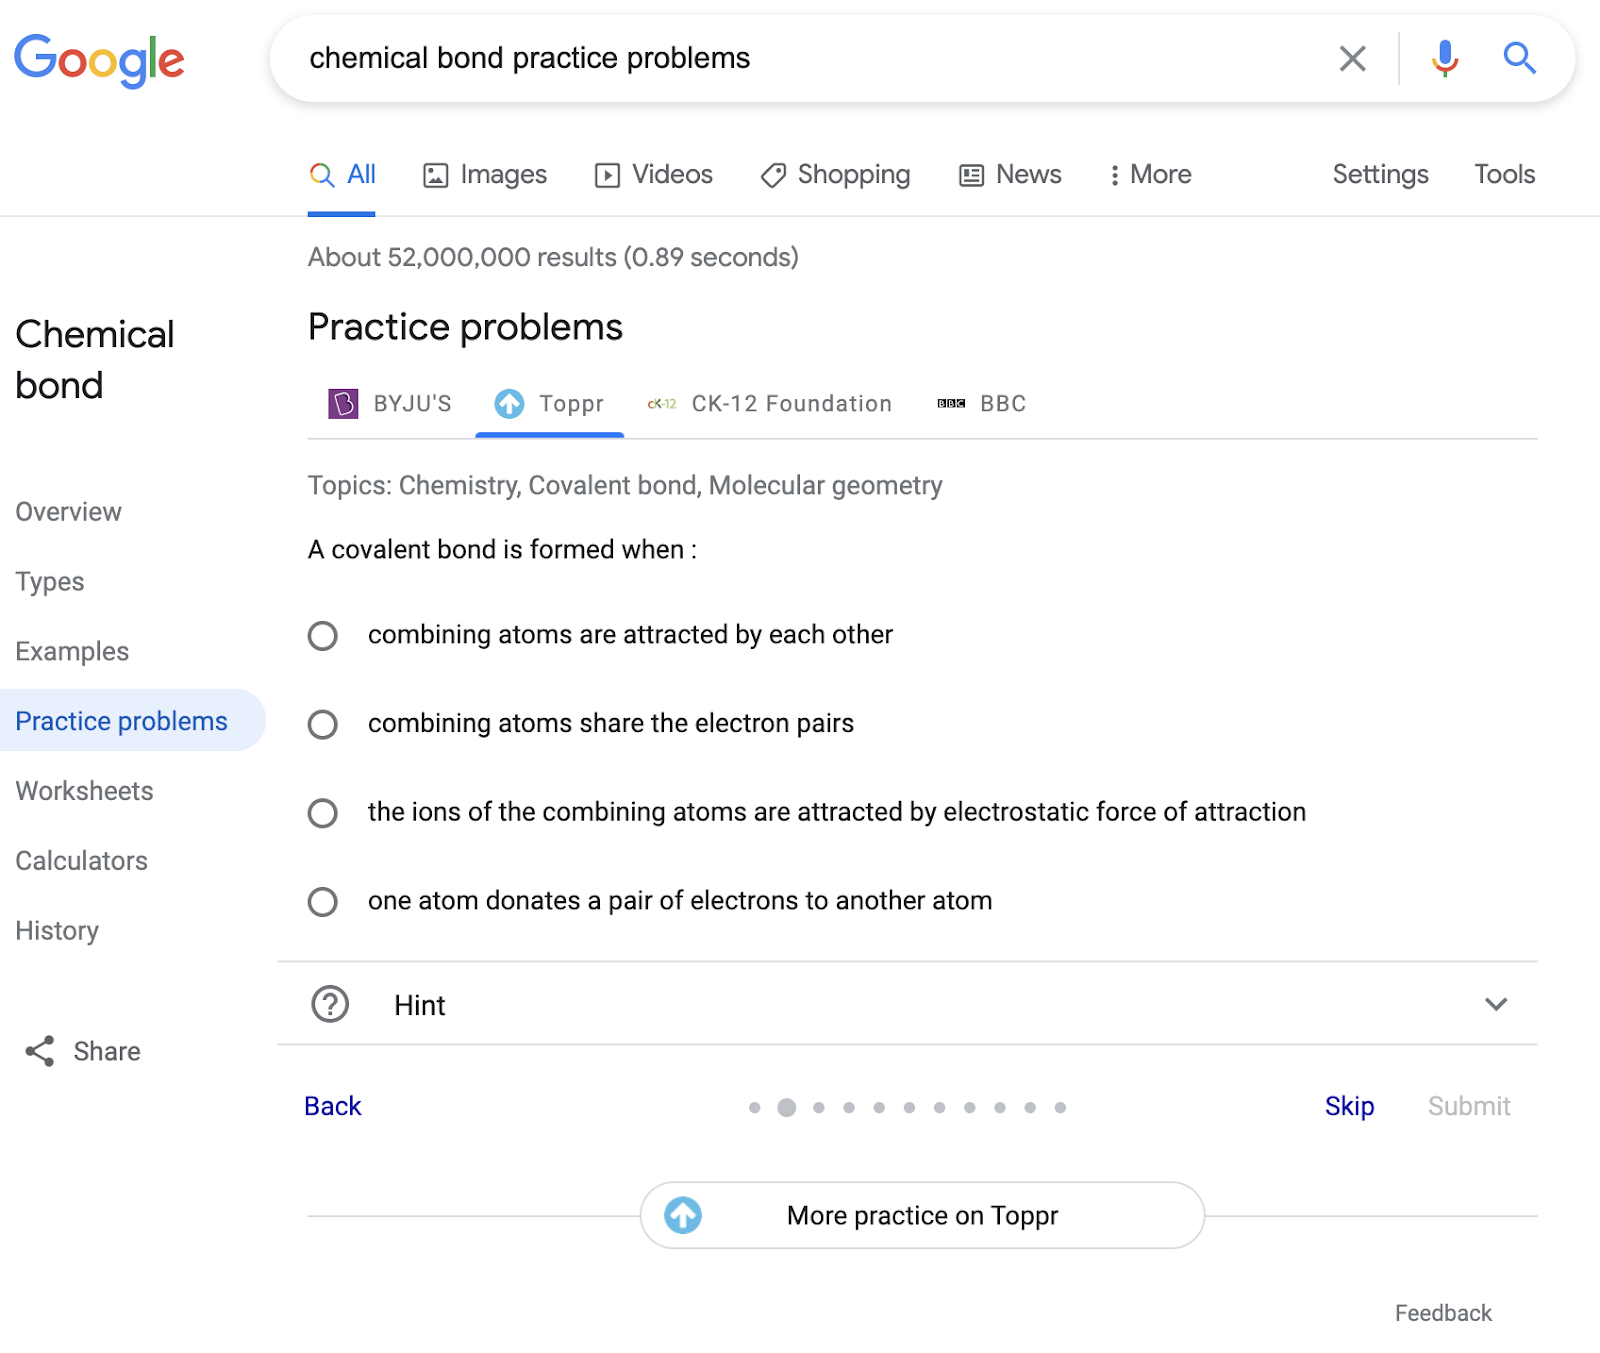 practice problems in search results